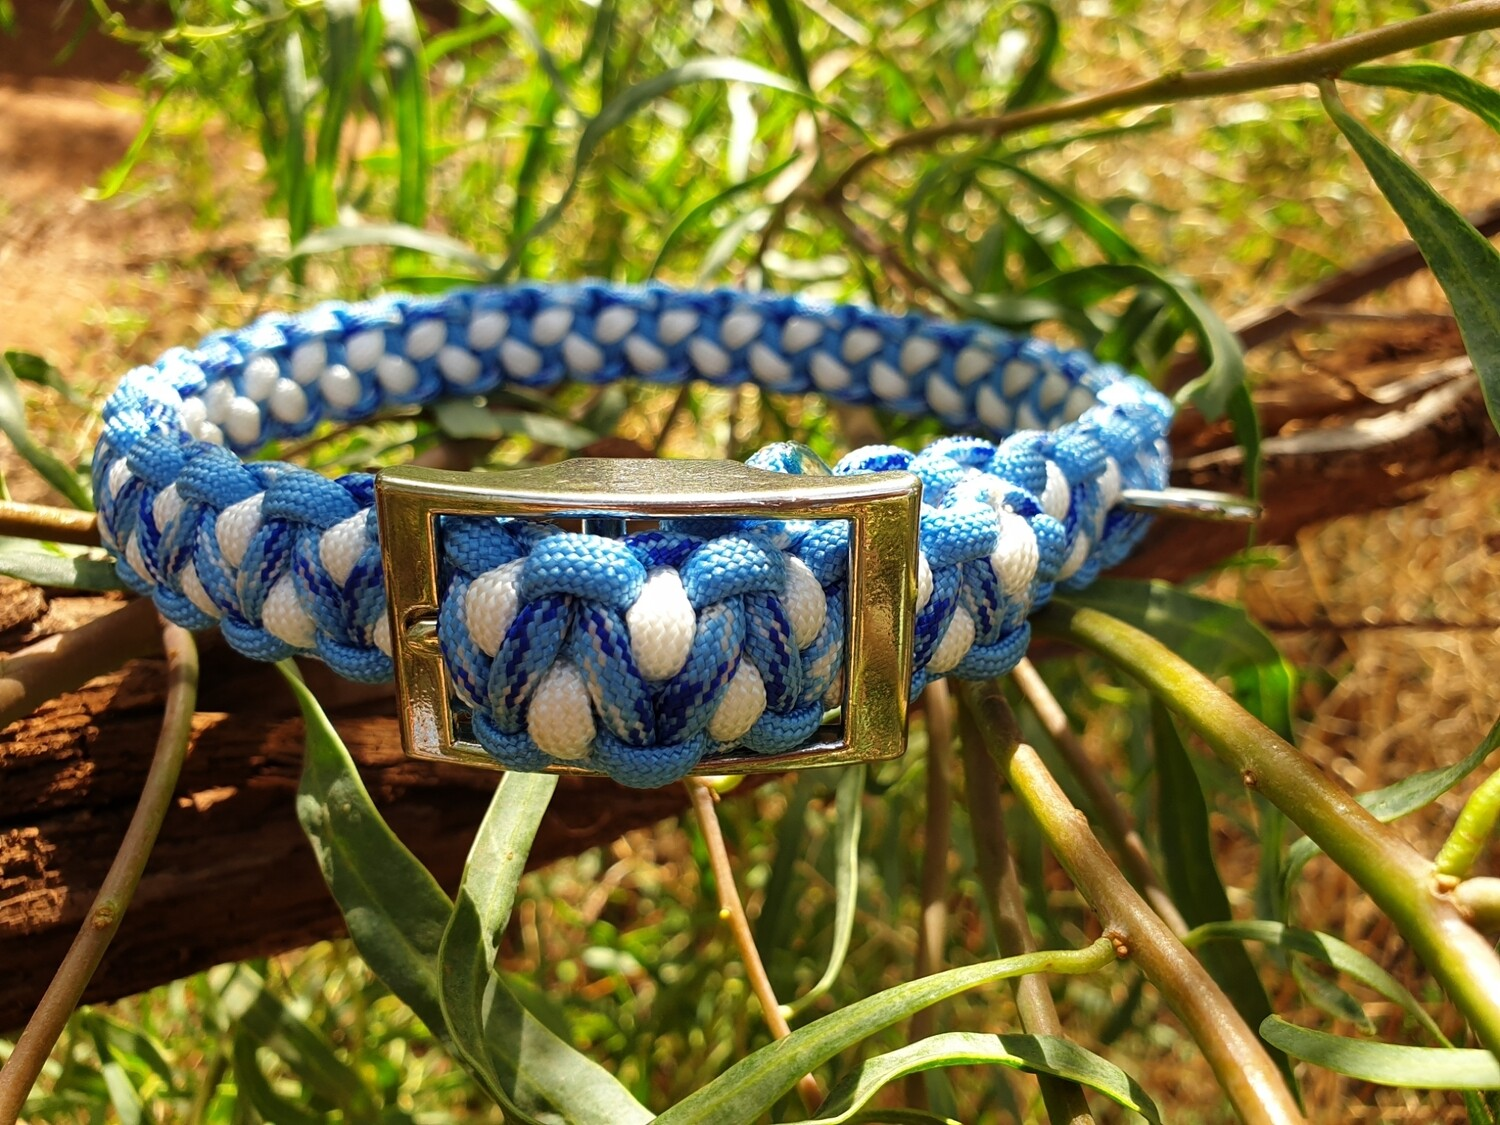 Blue and white drakon collar